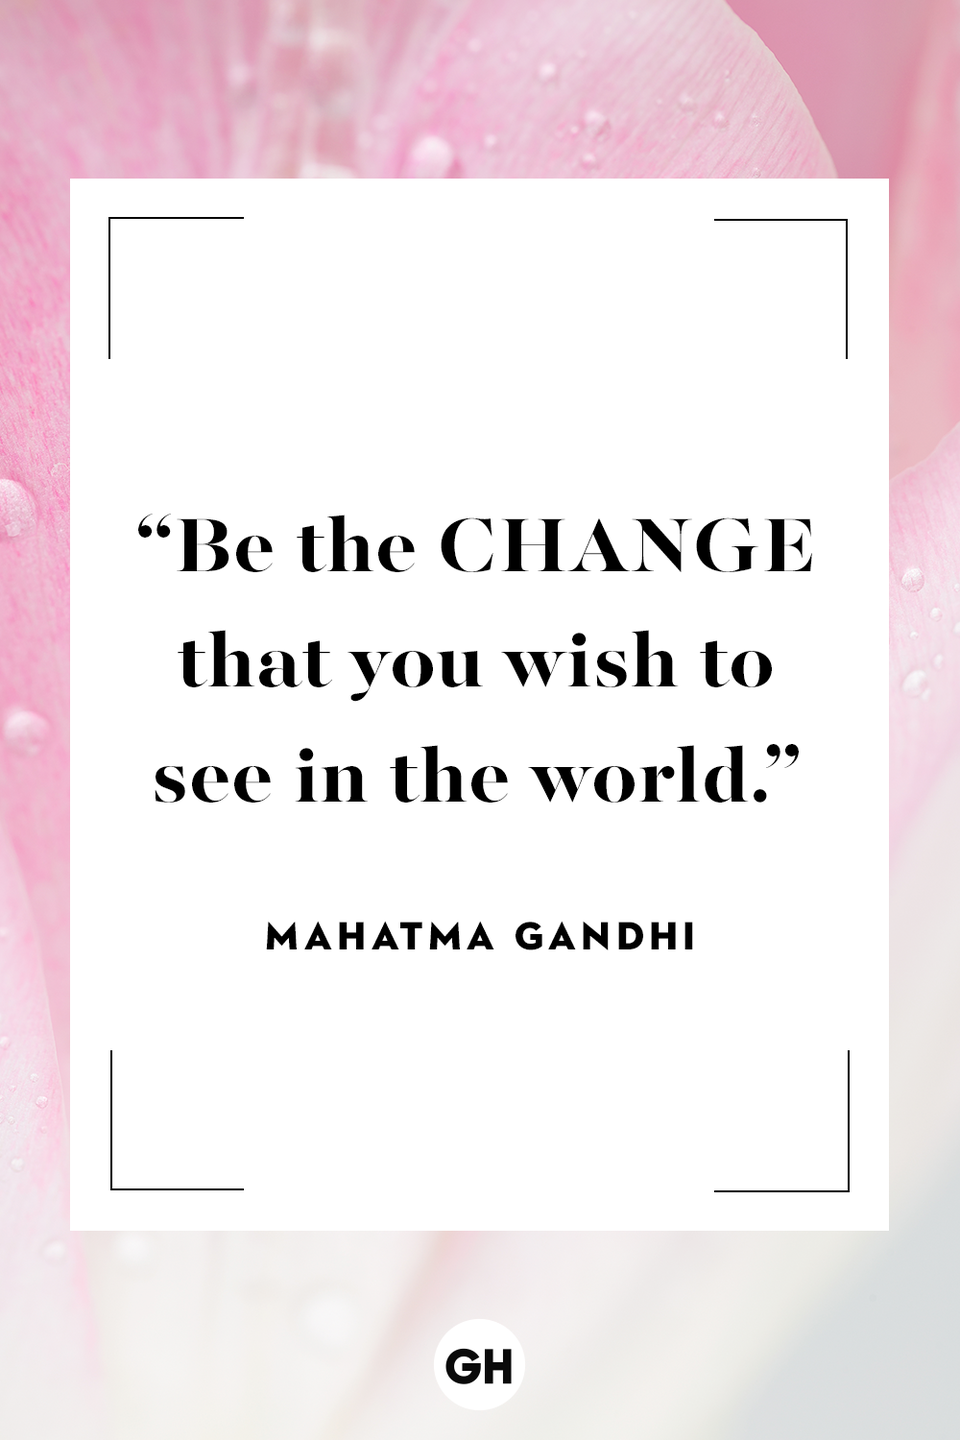 <p>Be the change that you wish to see in the world.</p>